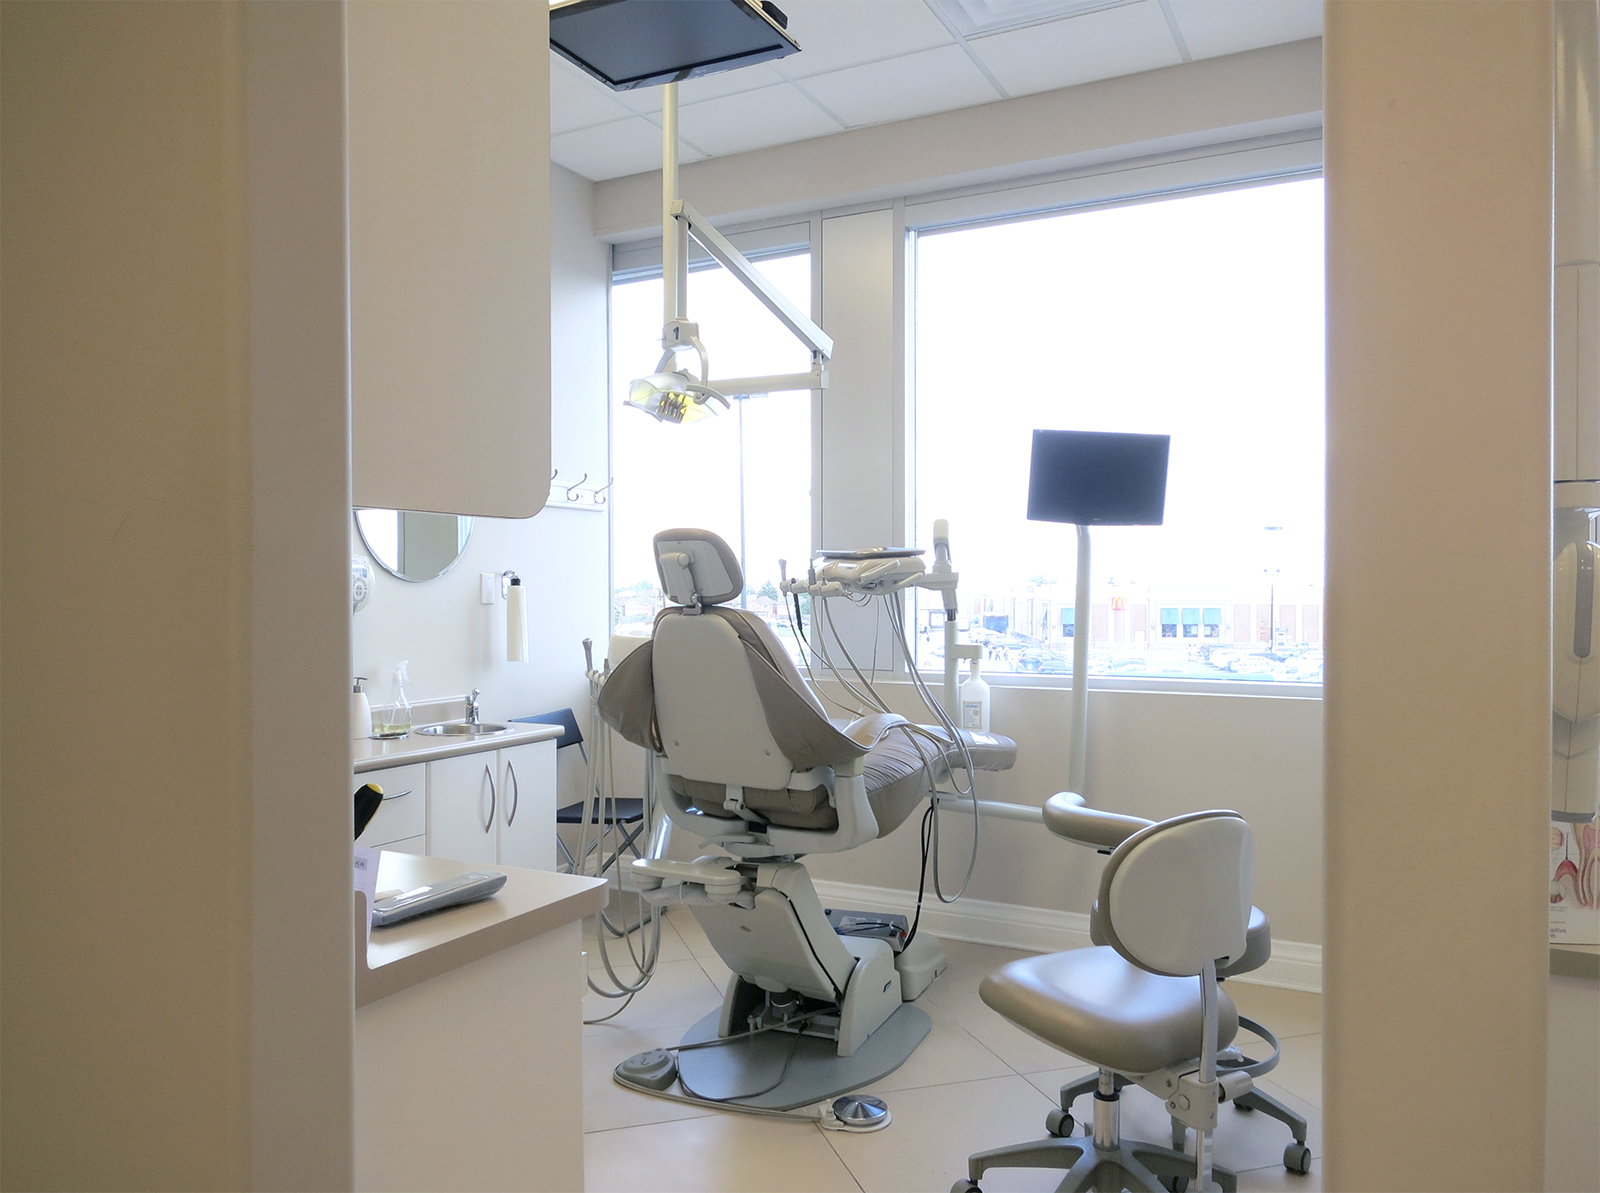 Dental room with ceiling- and chair-mounted monitors